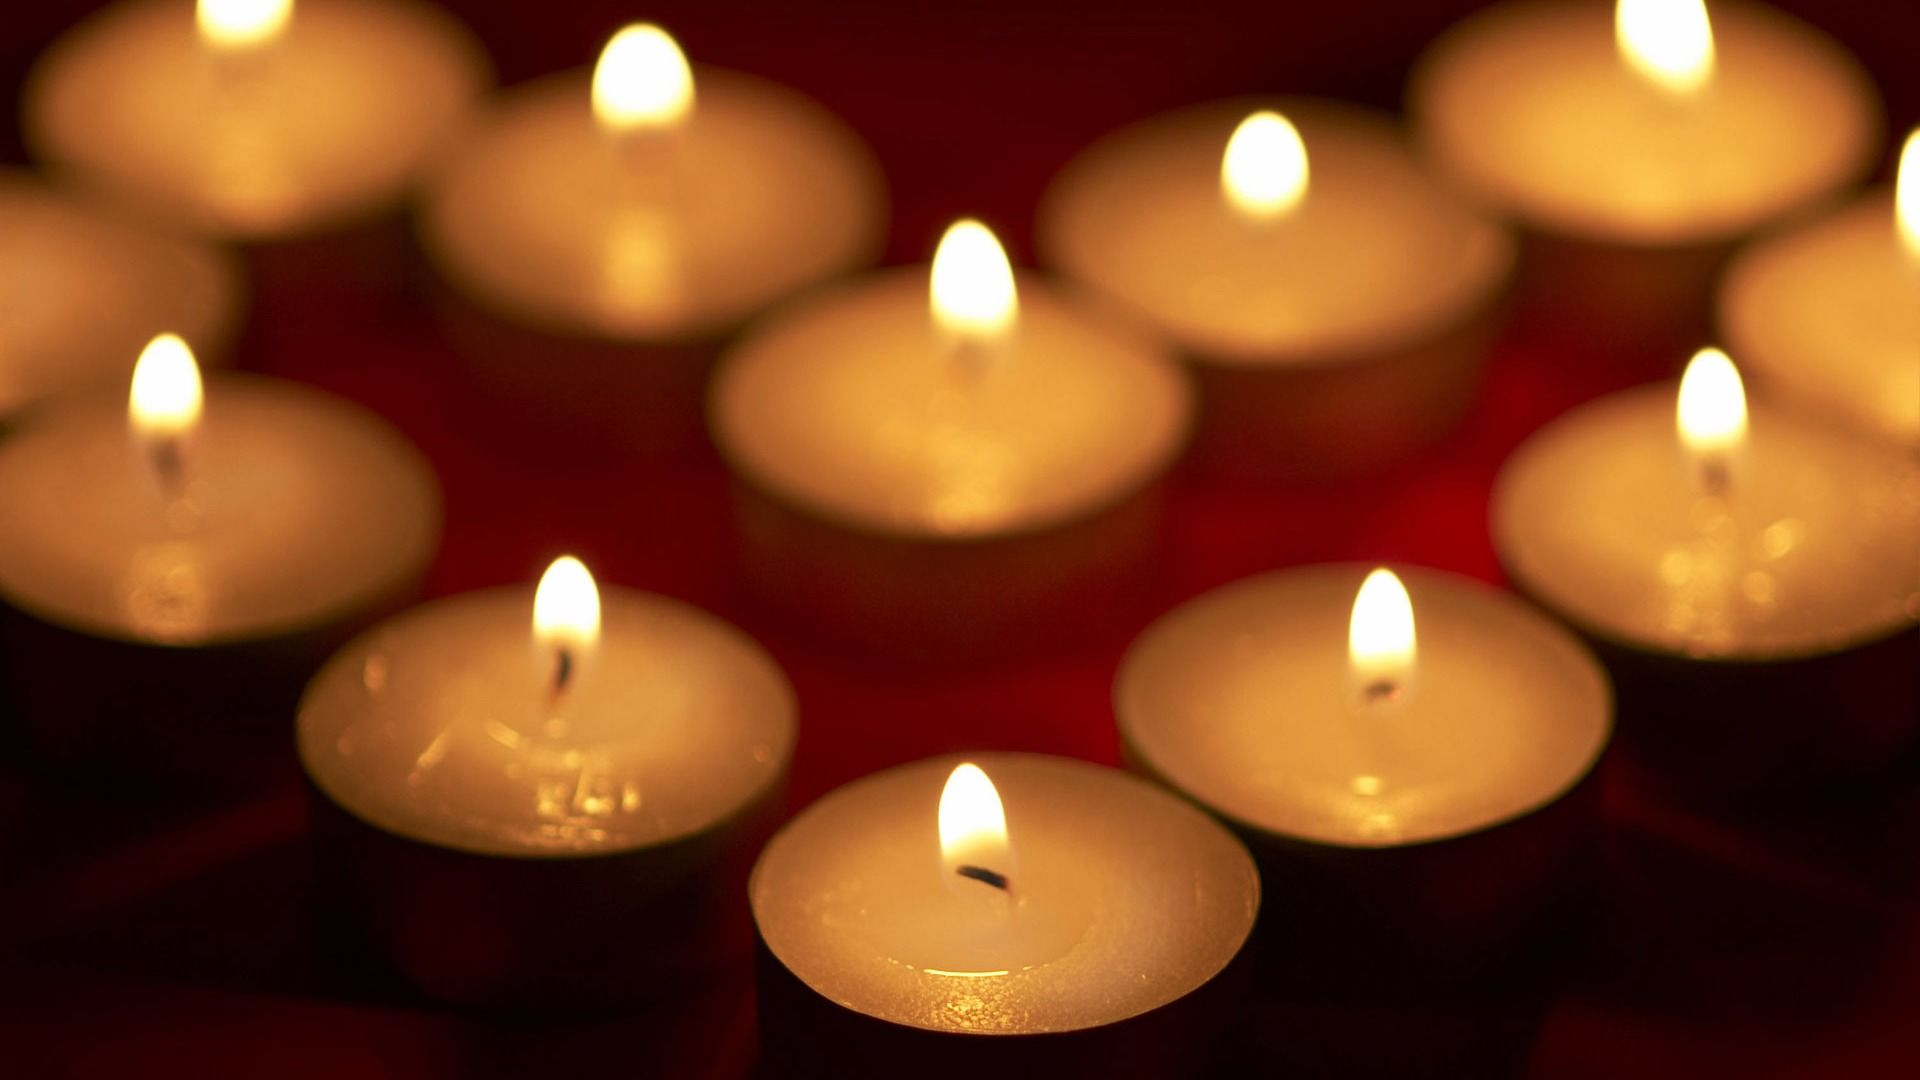 Candle full screen hd wallpaper